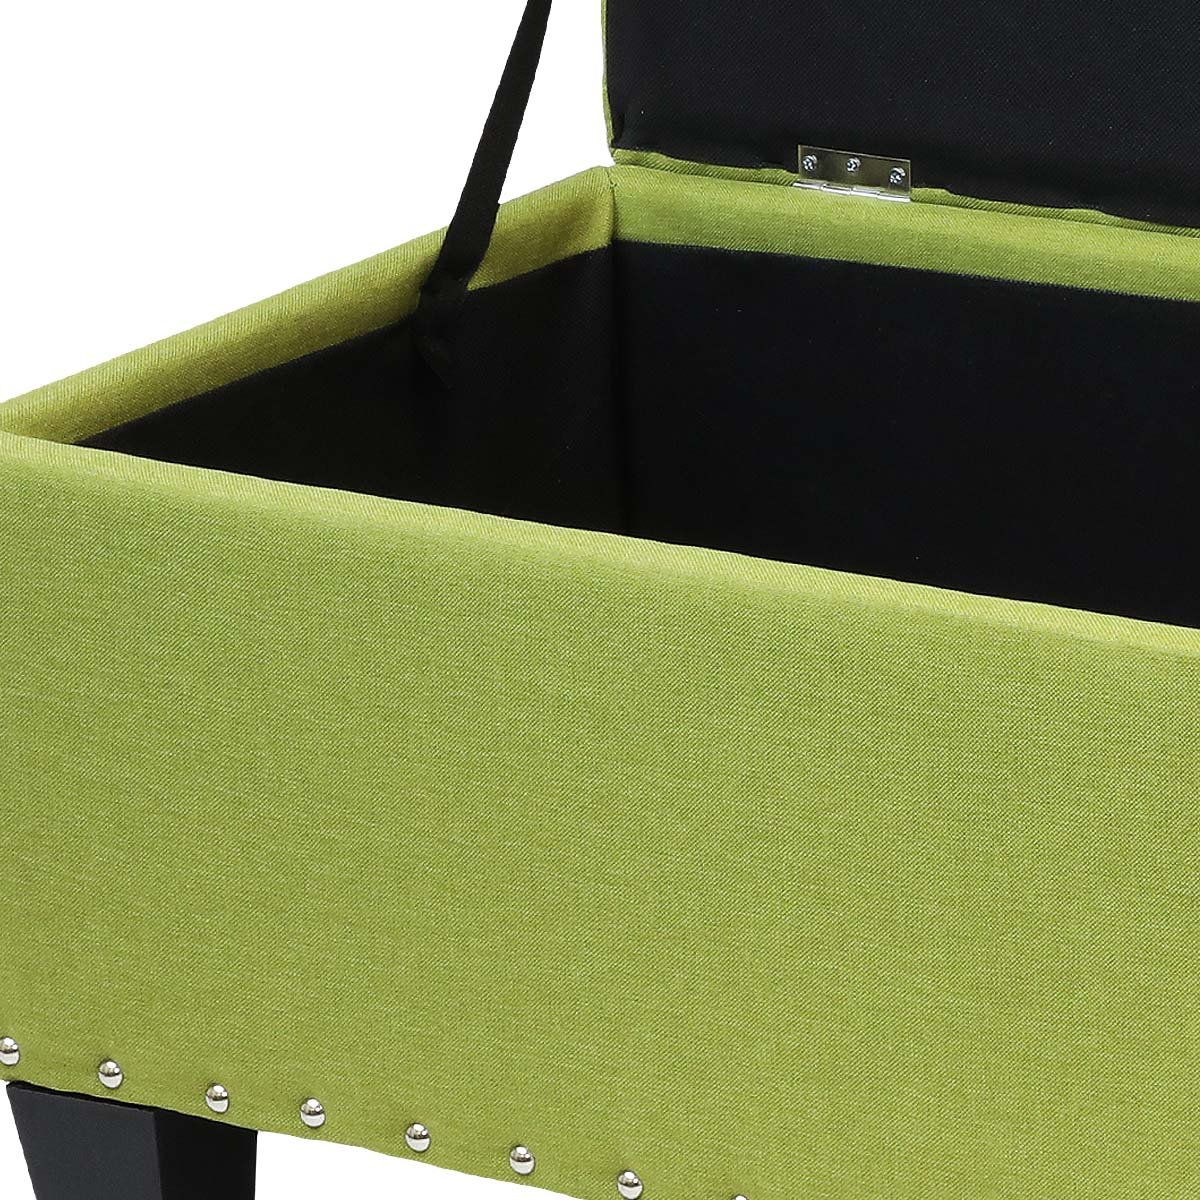 Magshion Rectangular Storage Ottoman Bench Tufted Footrest Lift Top Pouffe Ottoman, Coffee Table, Seat, Foot Rest, and more (42'', Linen Olive) by Magshion (Image #3)